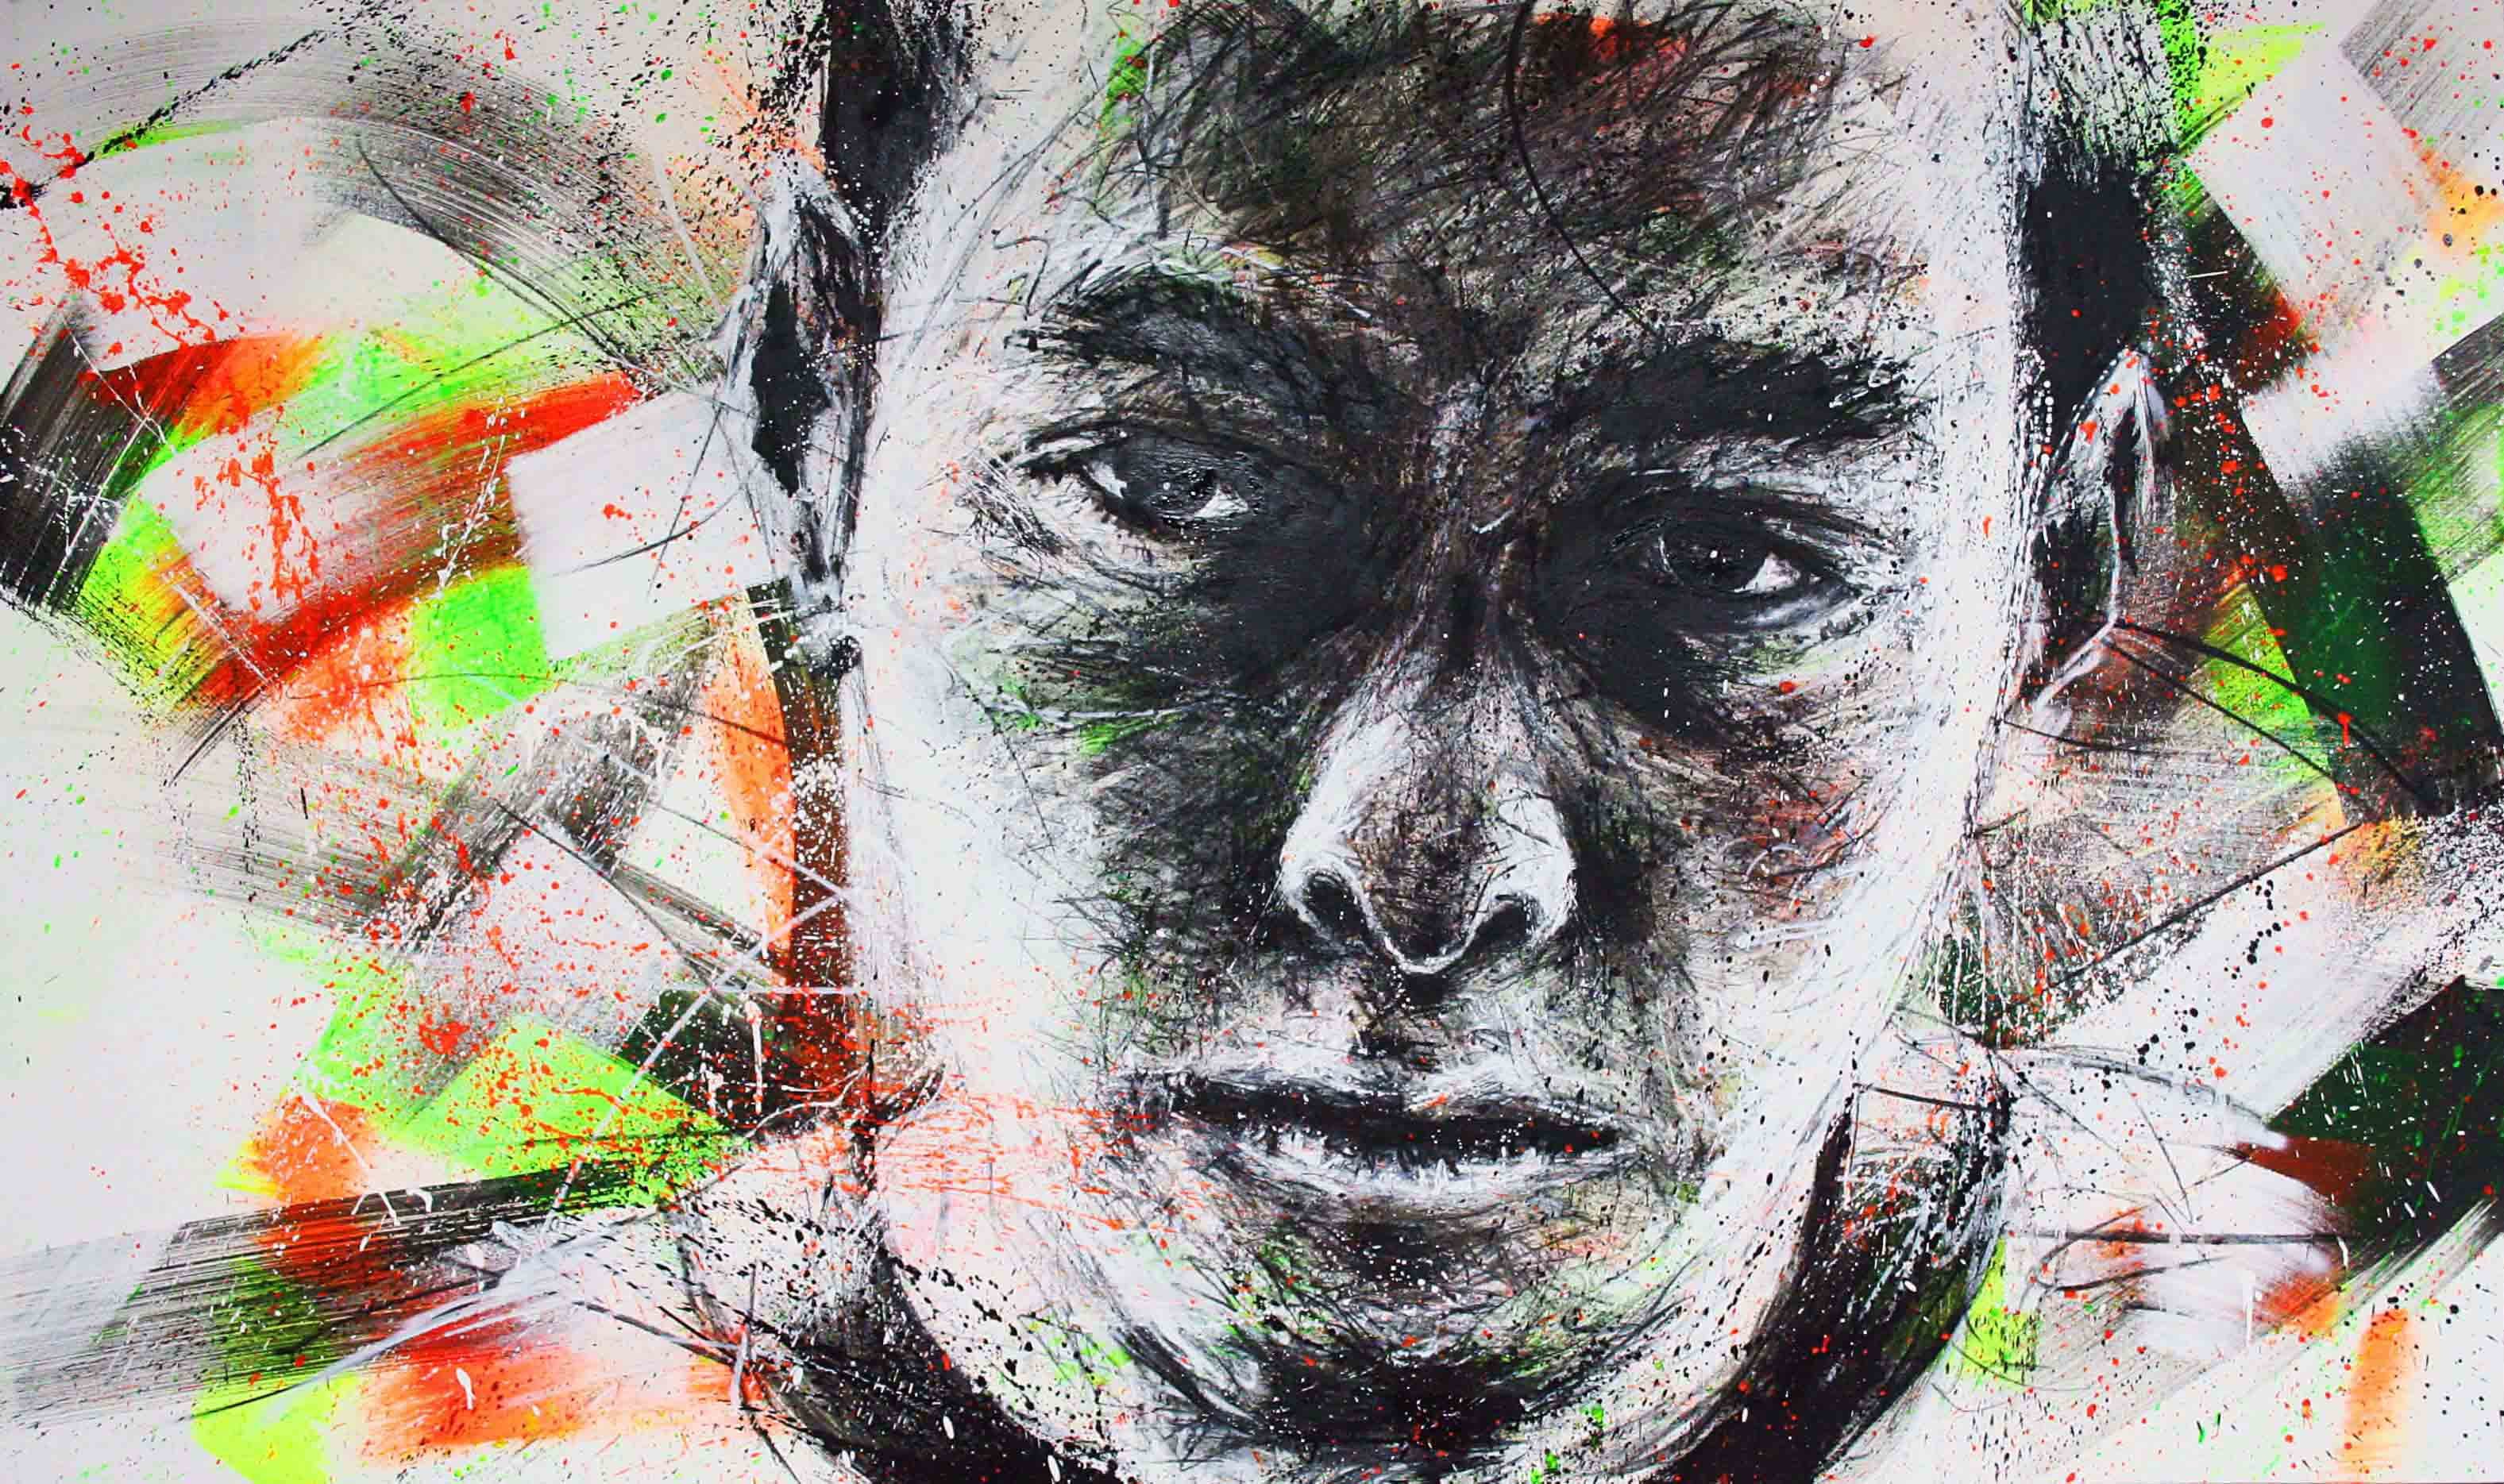 edward furlong de la collection de peinture chromophobia